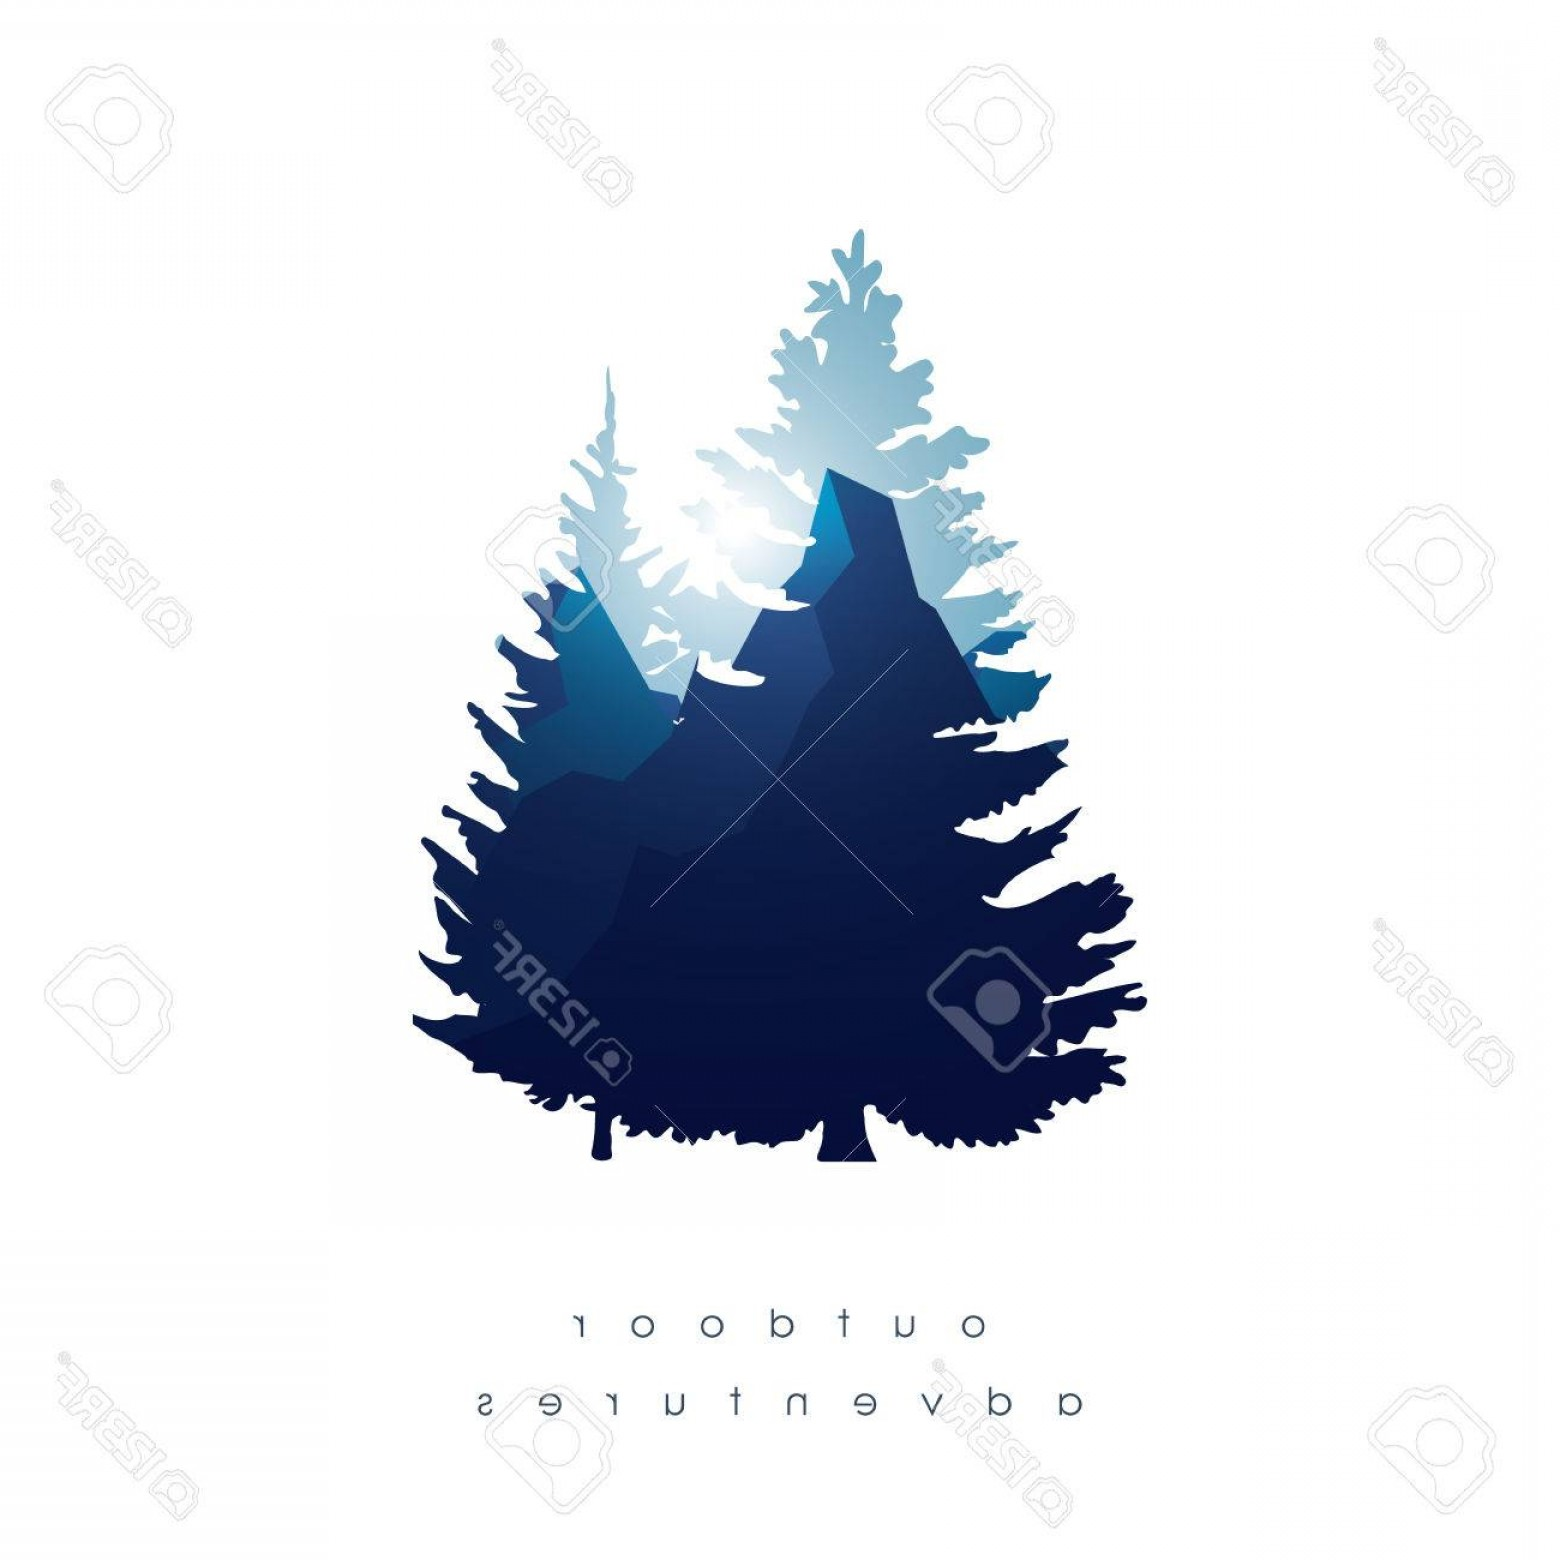 Vector Art Mountains Trees Colorado: Photostock Vector Trees Mountains In Double Exposure Style Vector Background Symbol Of Nature Landscape And Outdoor Ad